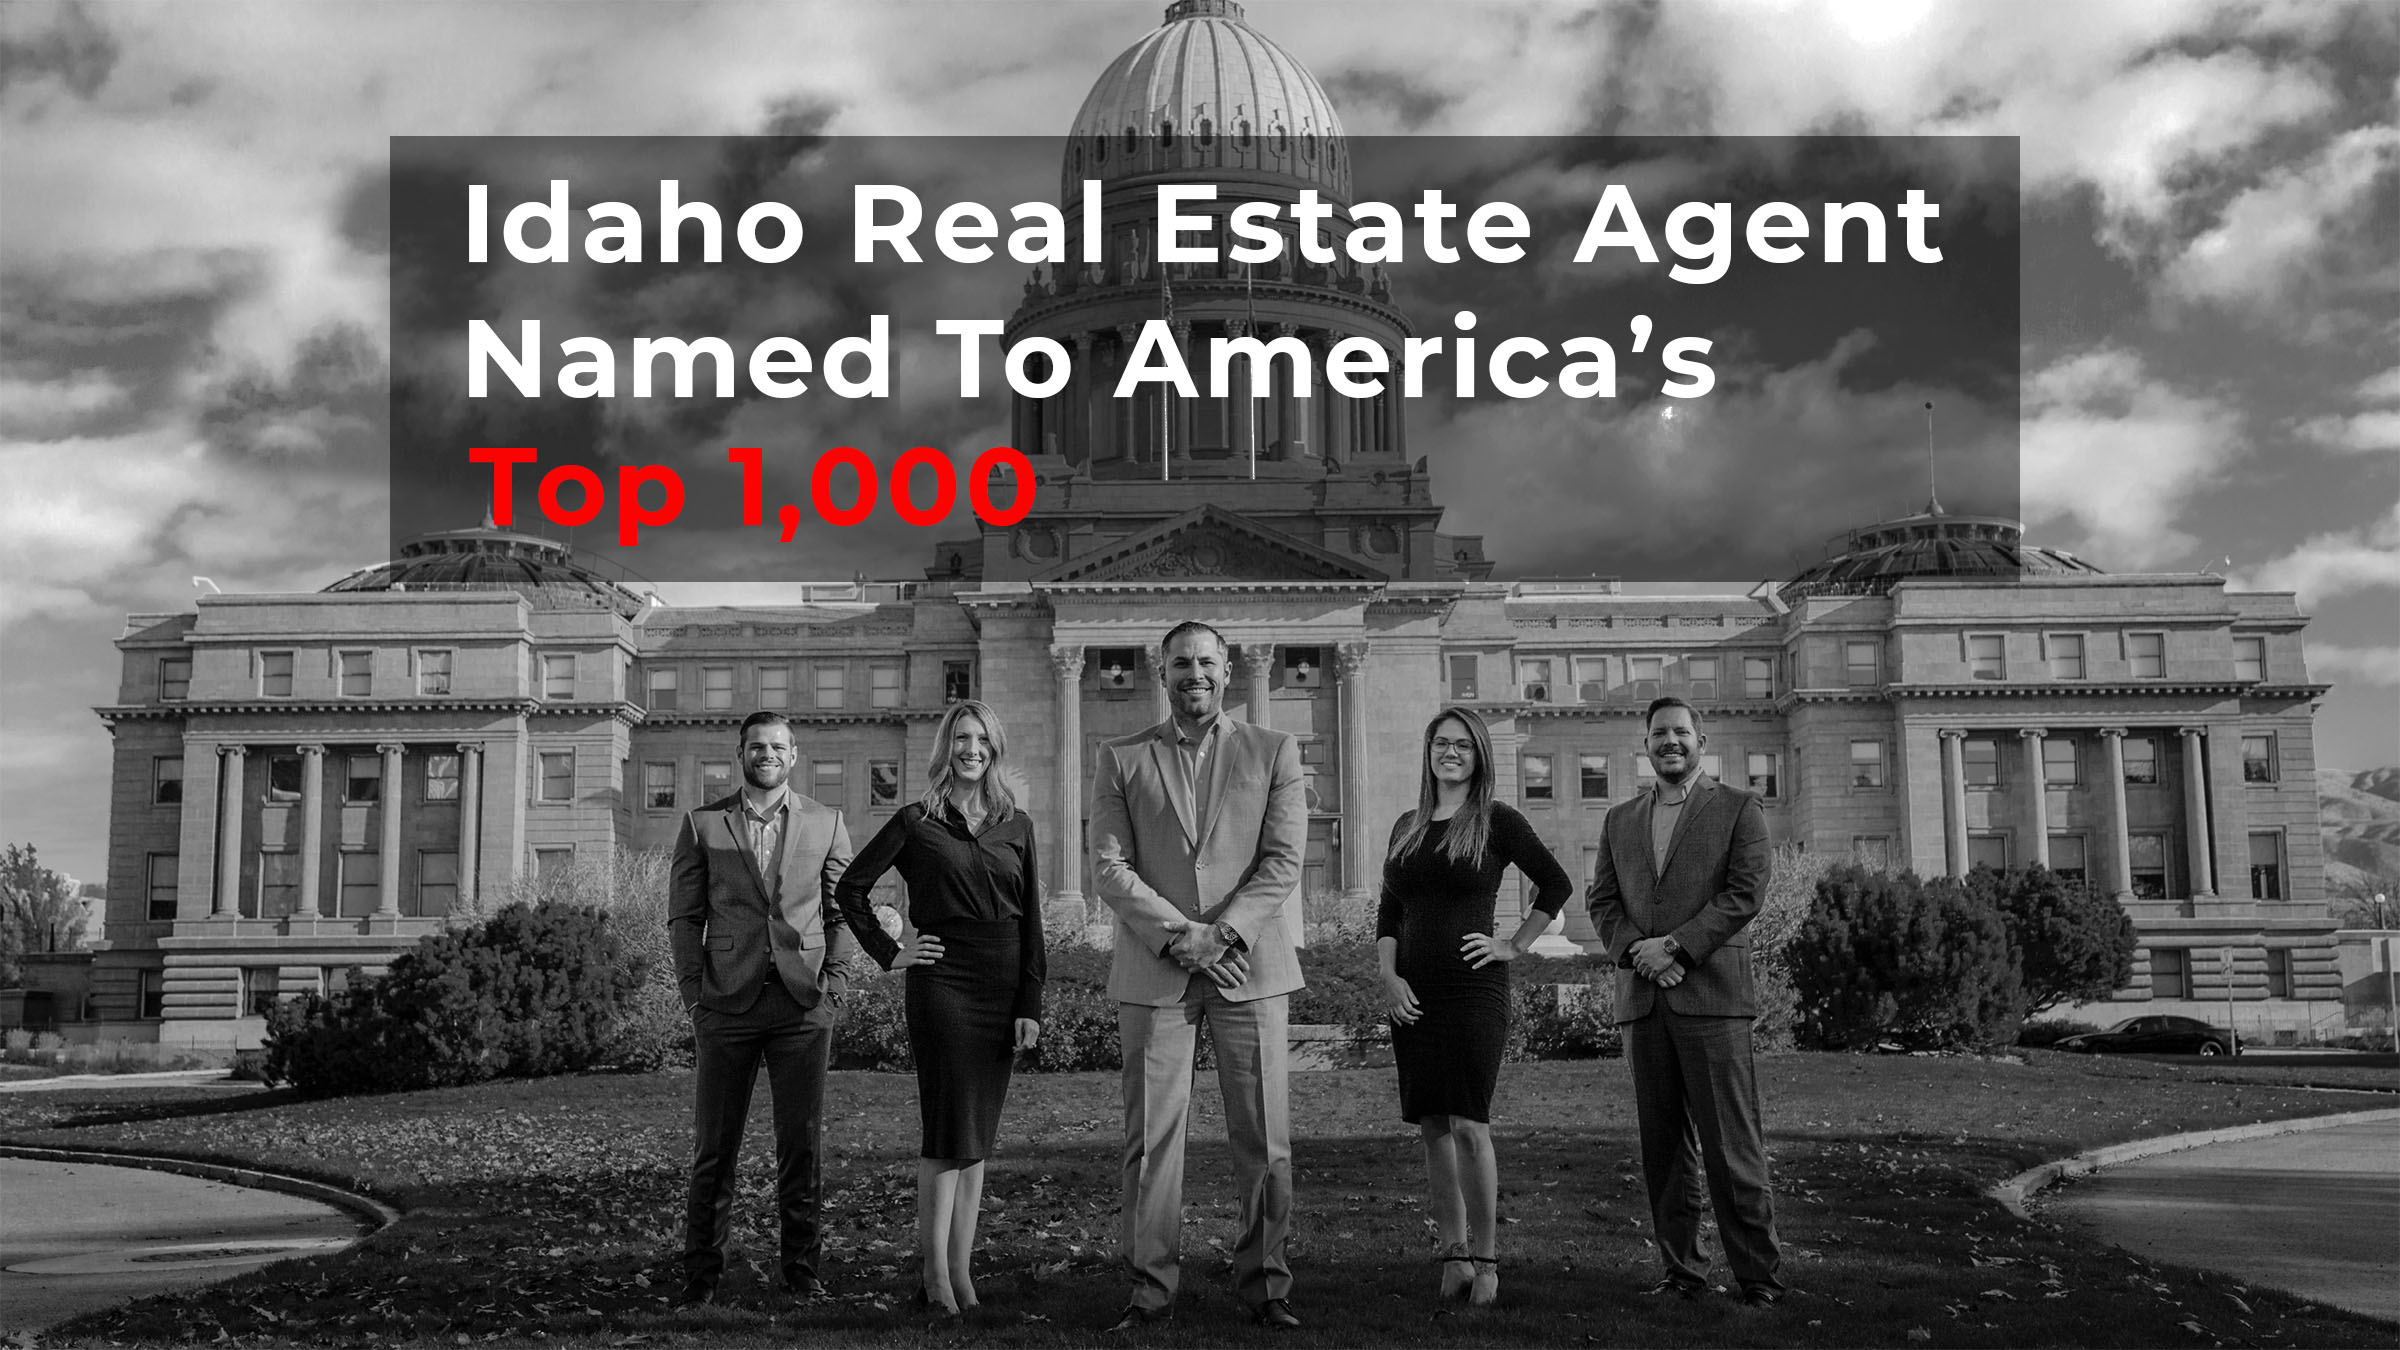 Idaho Real Estate Agent Named to America's Top 1,000